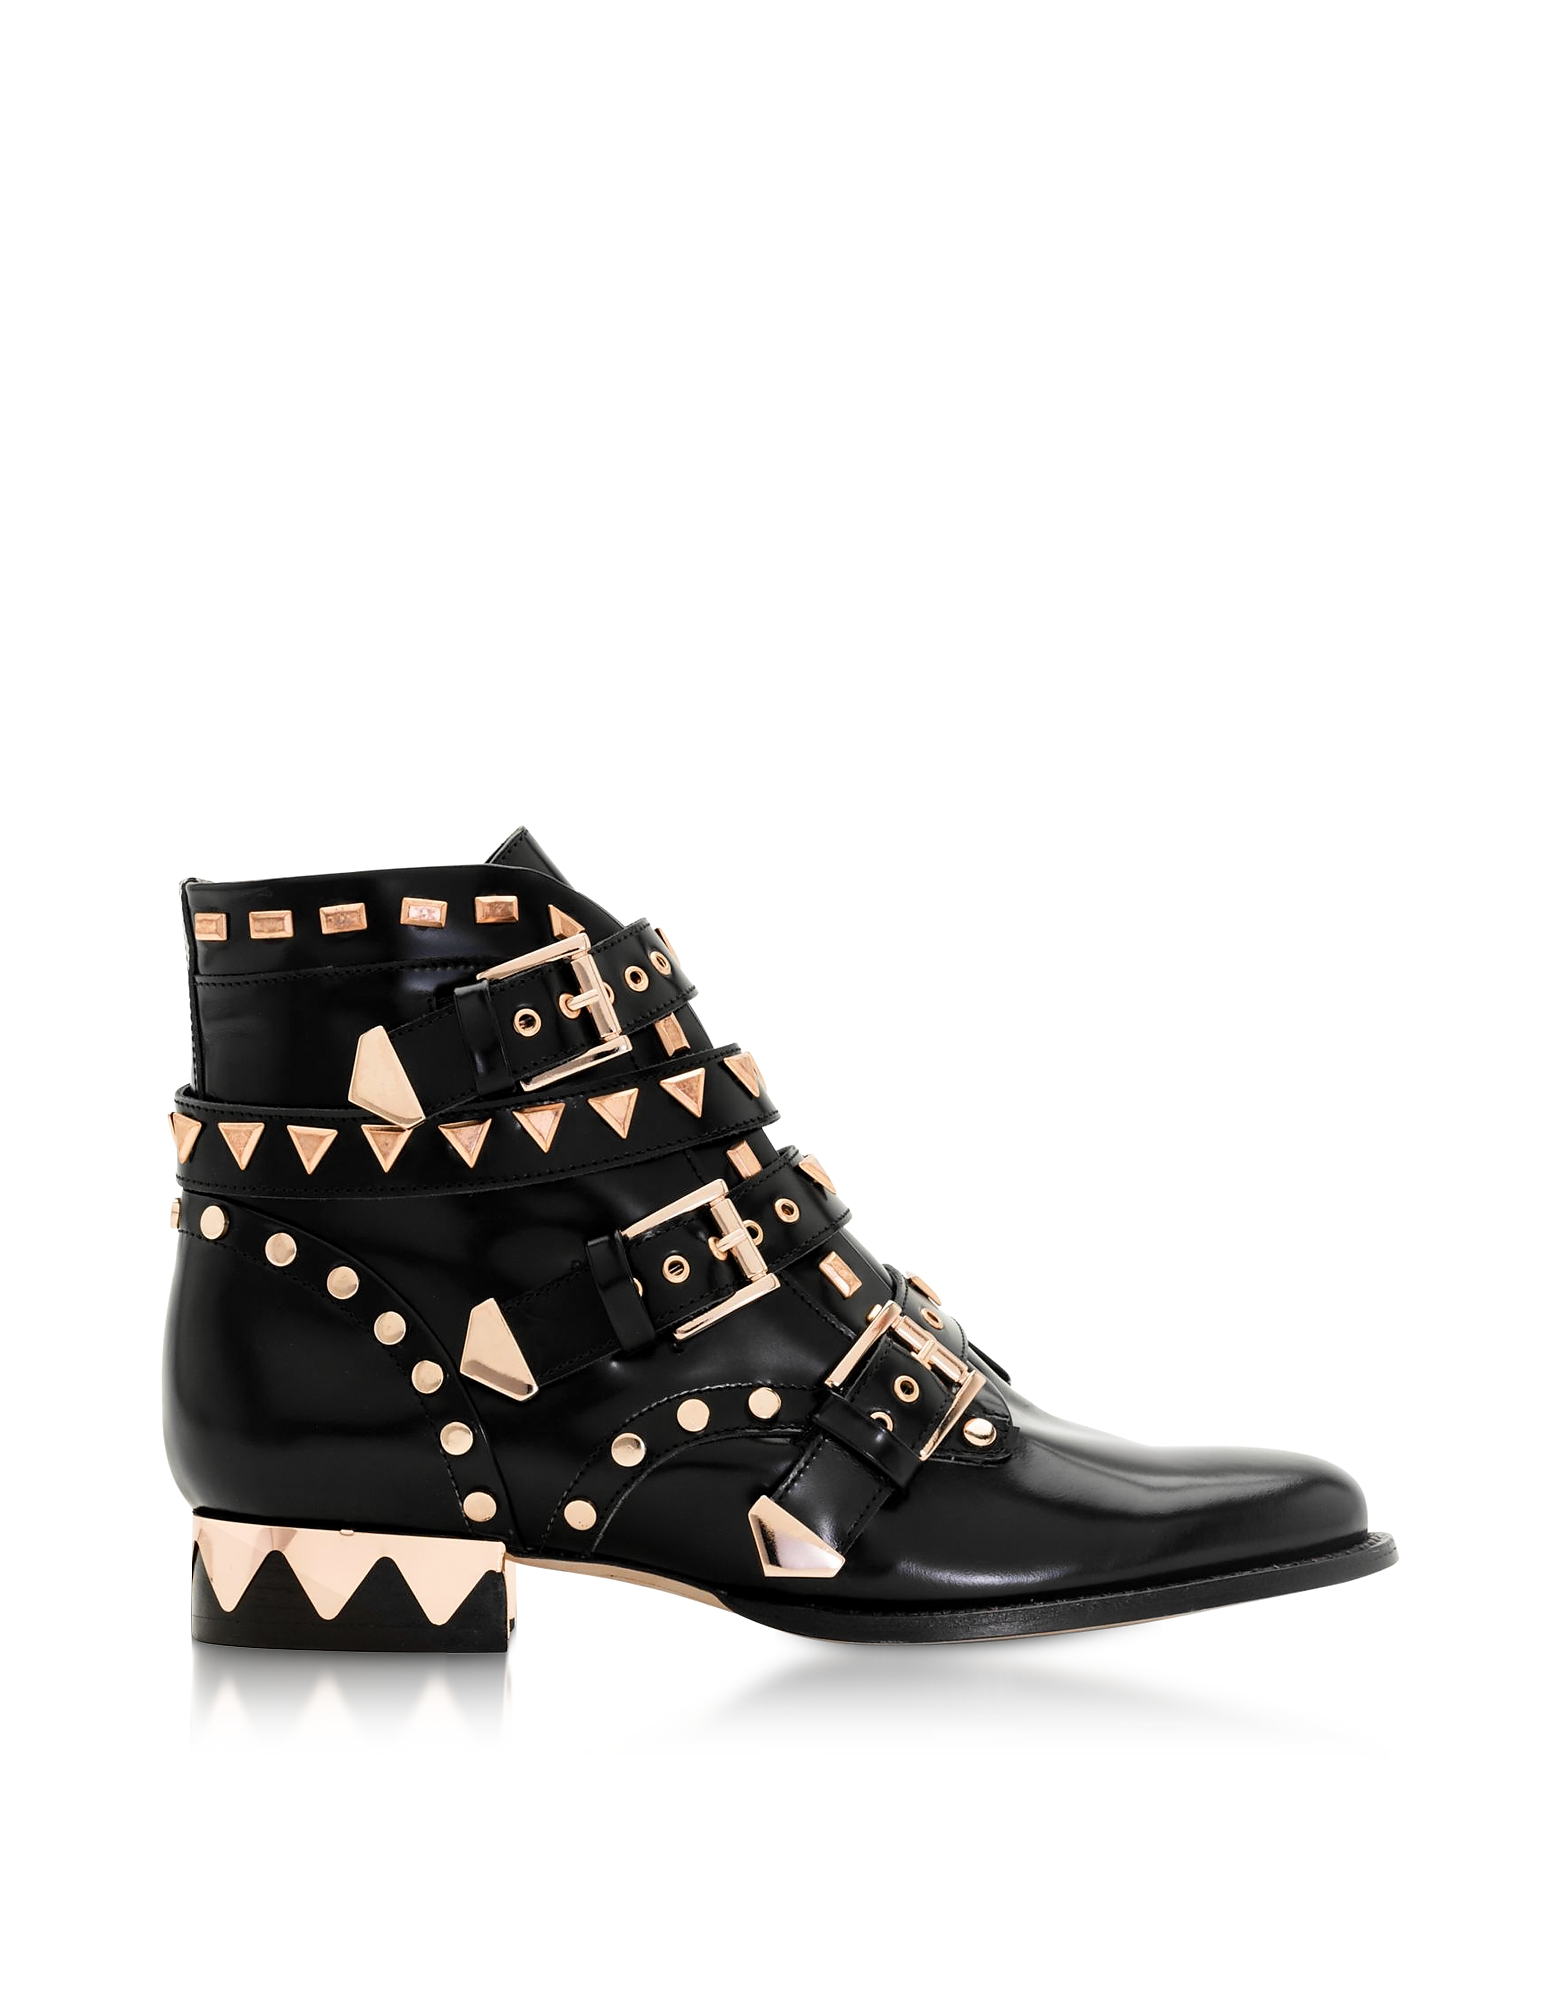 Sophia Webster Black and Rose Gold Riko Flat Biker Boots